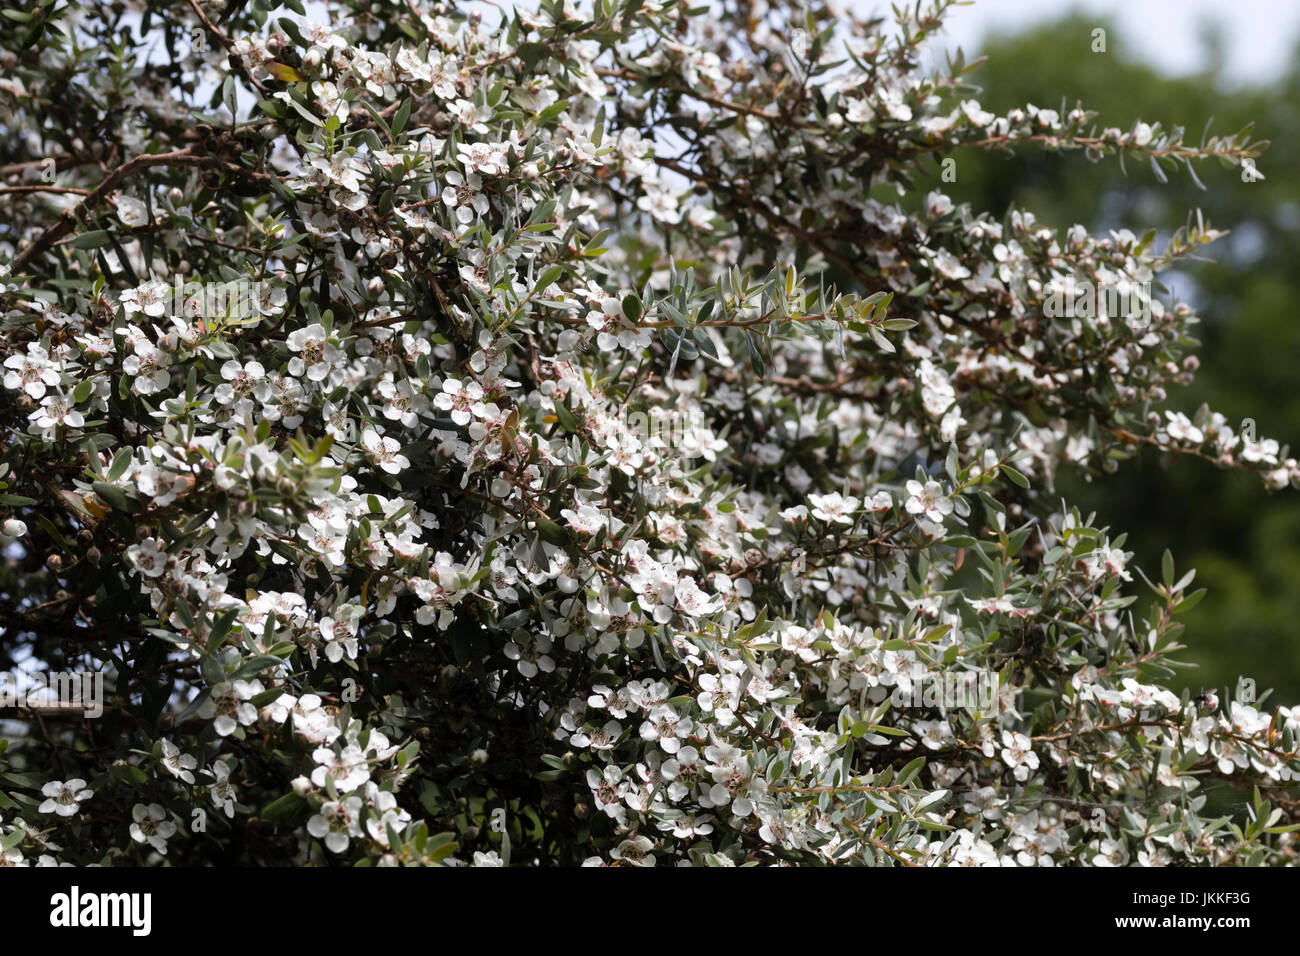 Small white flowers smother the branches of the Mountain tea tree, Leptospermum grandiflorum - Stock Image